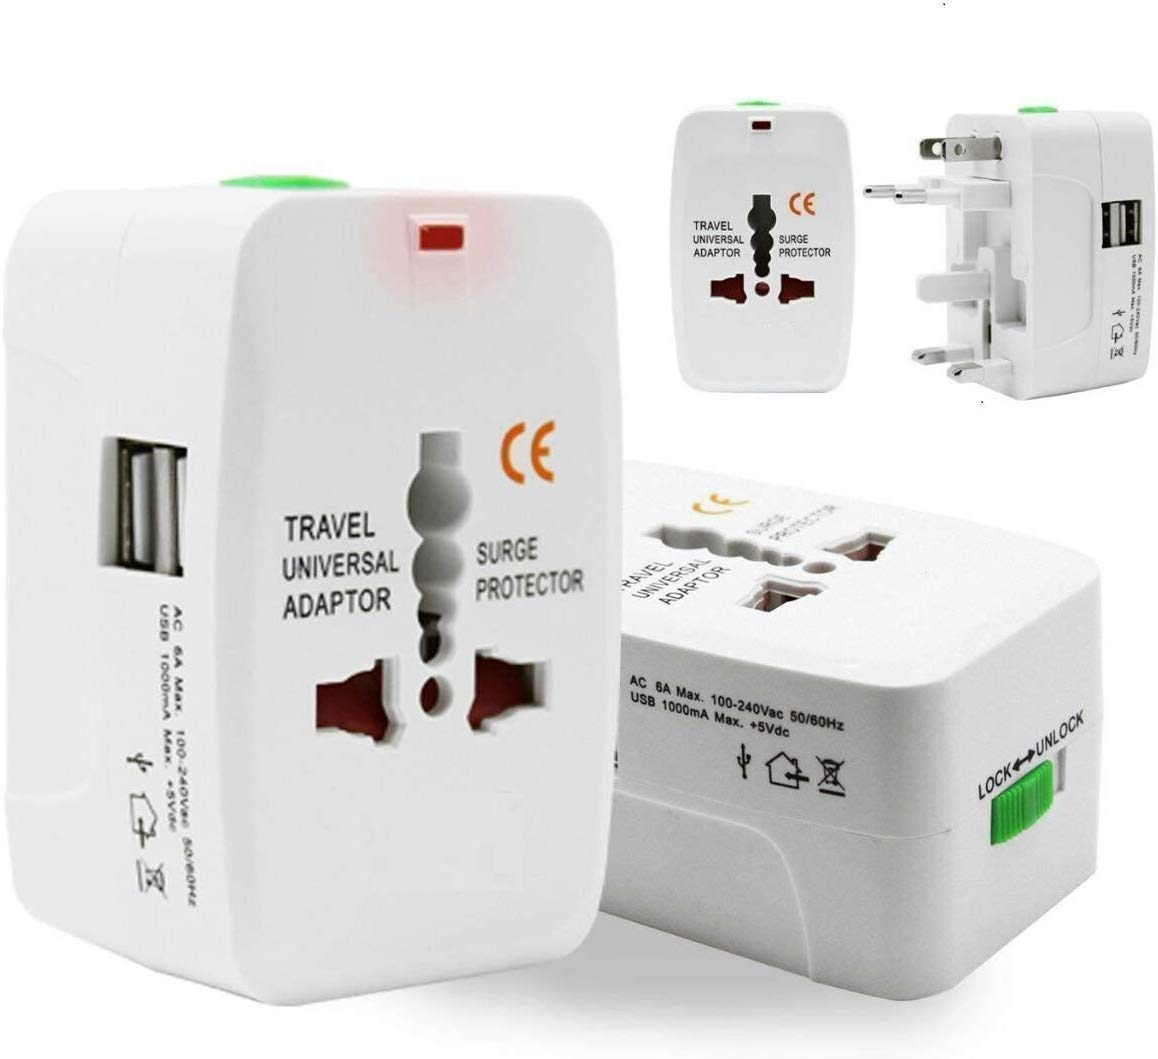 Amazon.in: Buy TECH SHOP Universal Adapter Worldwide Travel Adapter with  Built in Dual USB Charger Ports (White) Online at Low Prices in India |  Tech Shop Reviews & Ratings